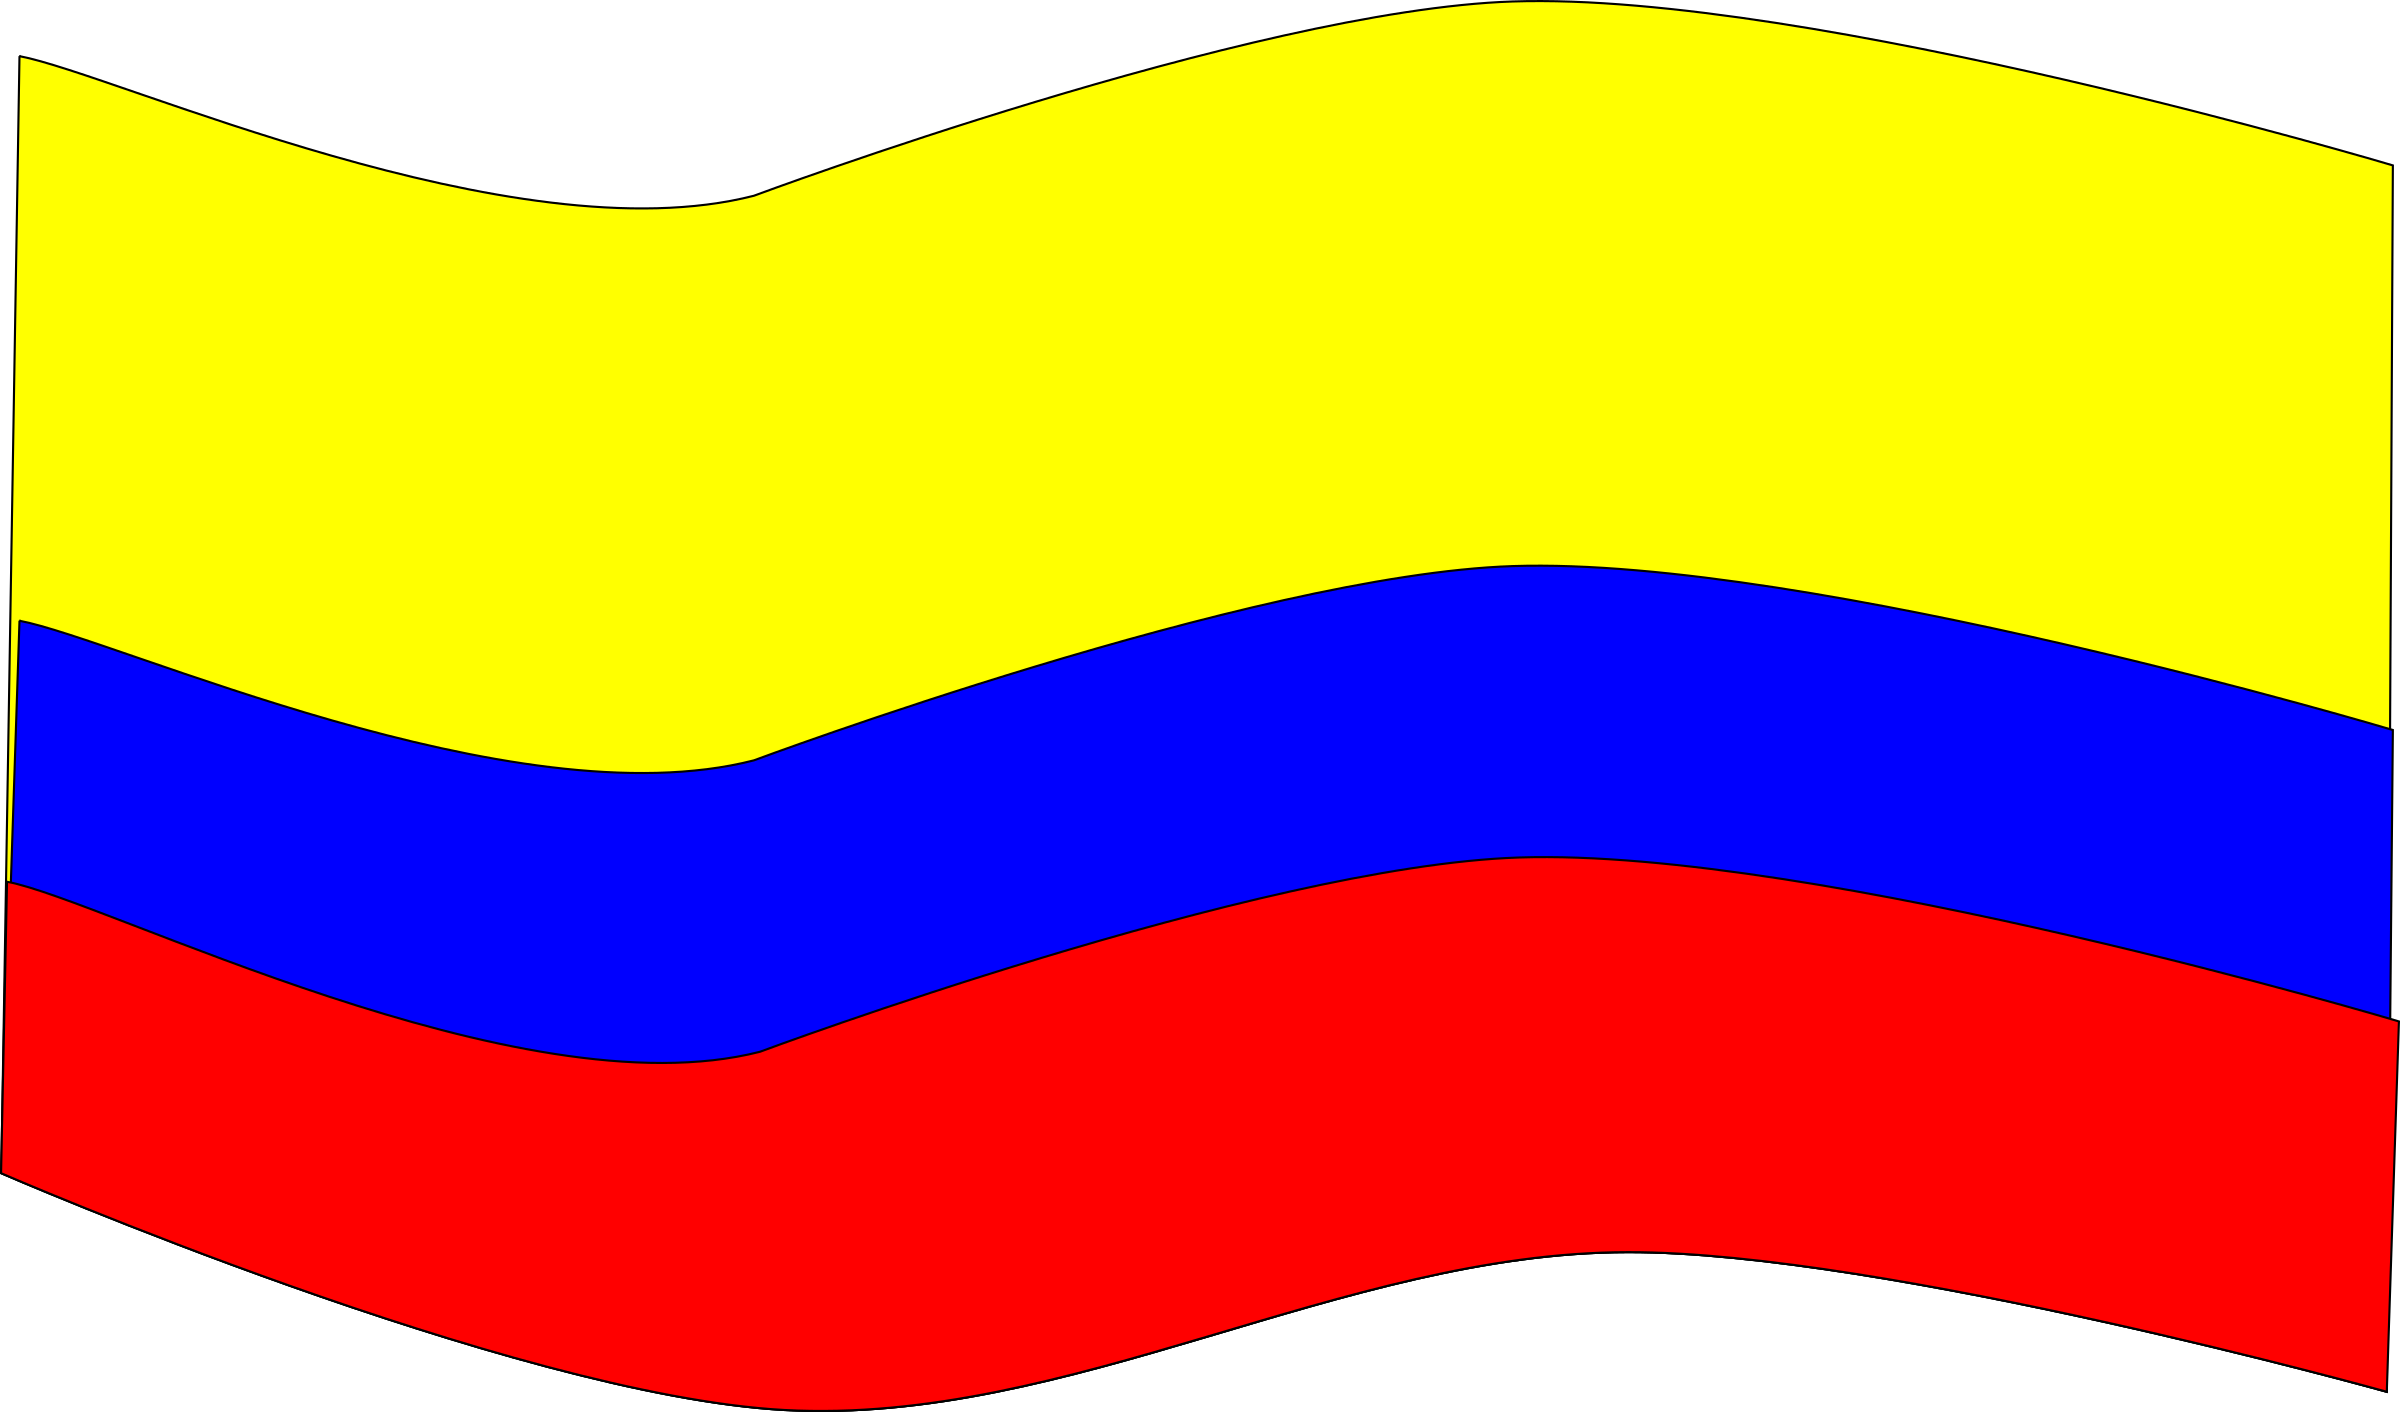 Bandera colombia clipart banner royalty free library Bandera Colombia Big - Bandera De Colombia En Png , Transparent ... banner royalty free library